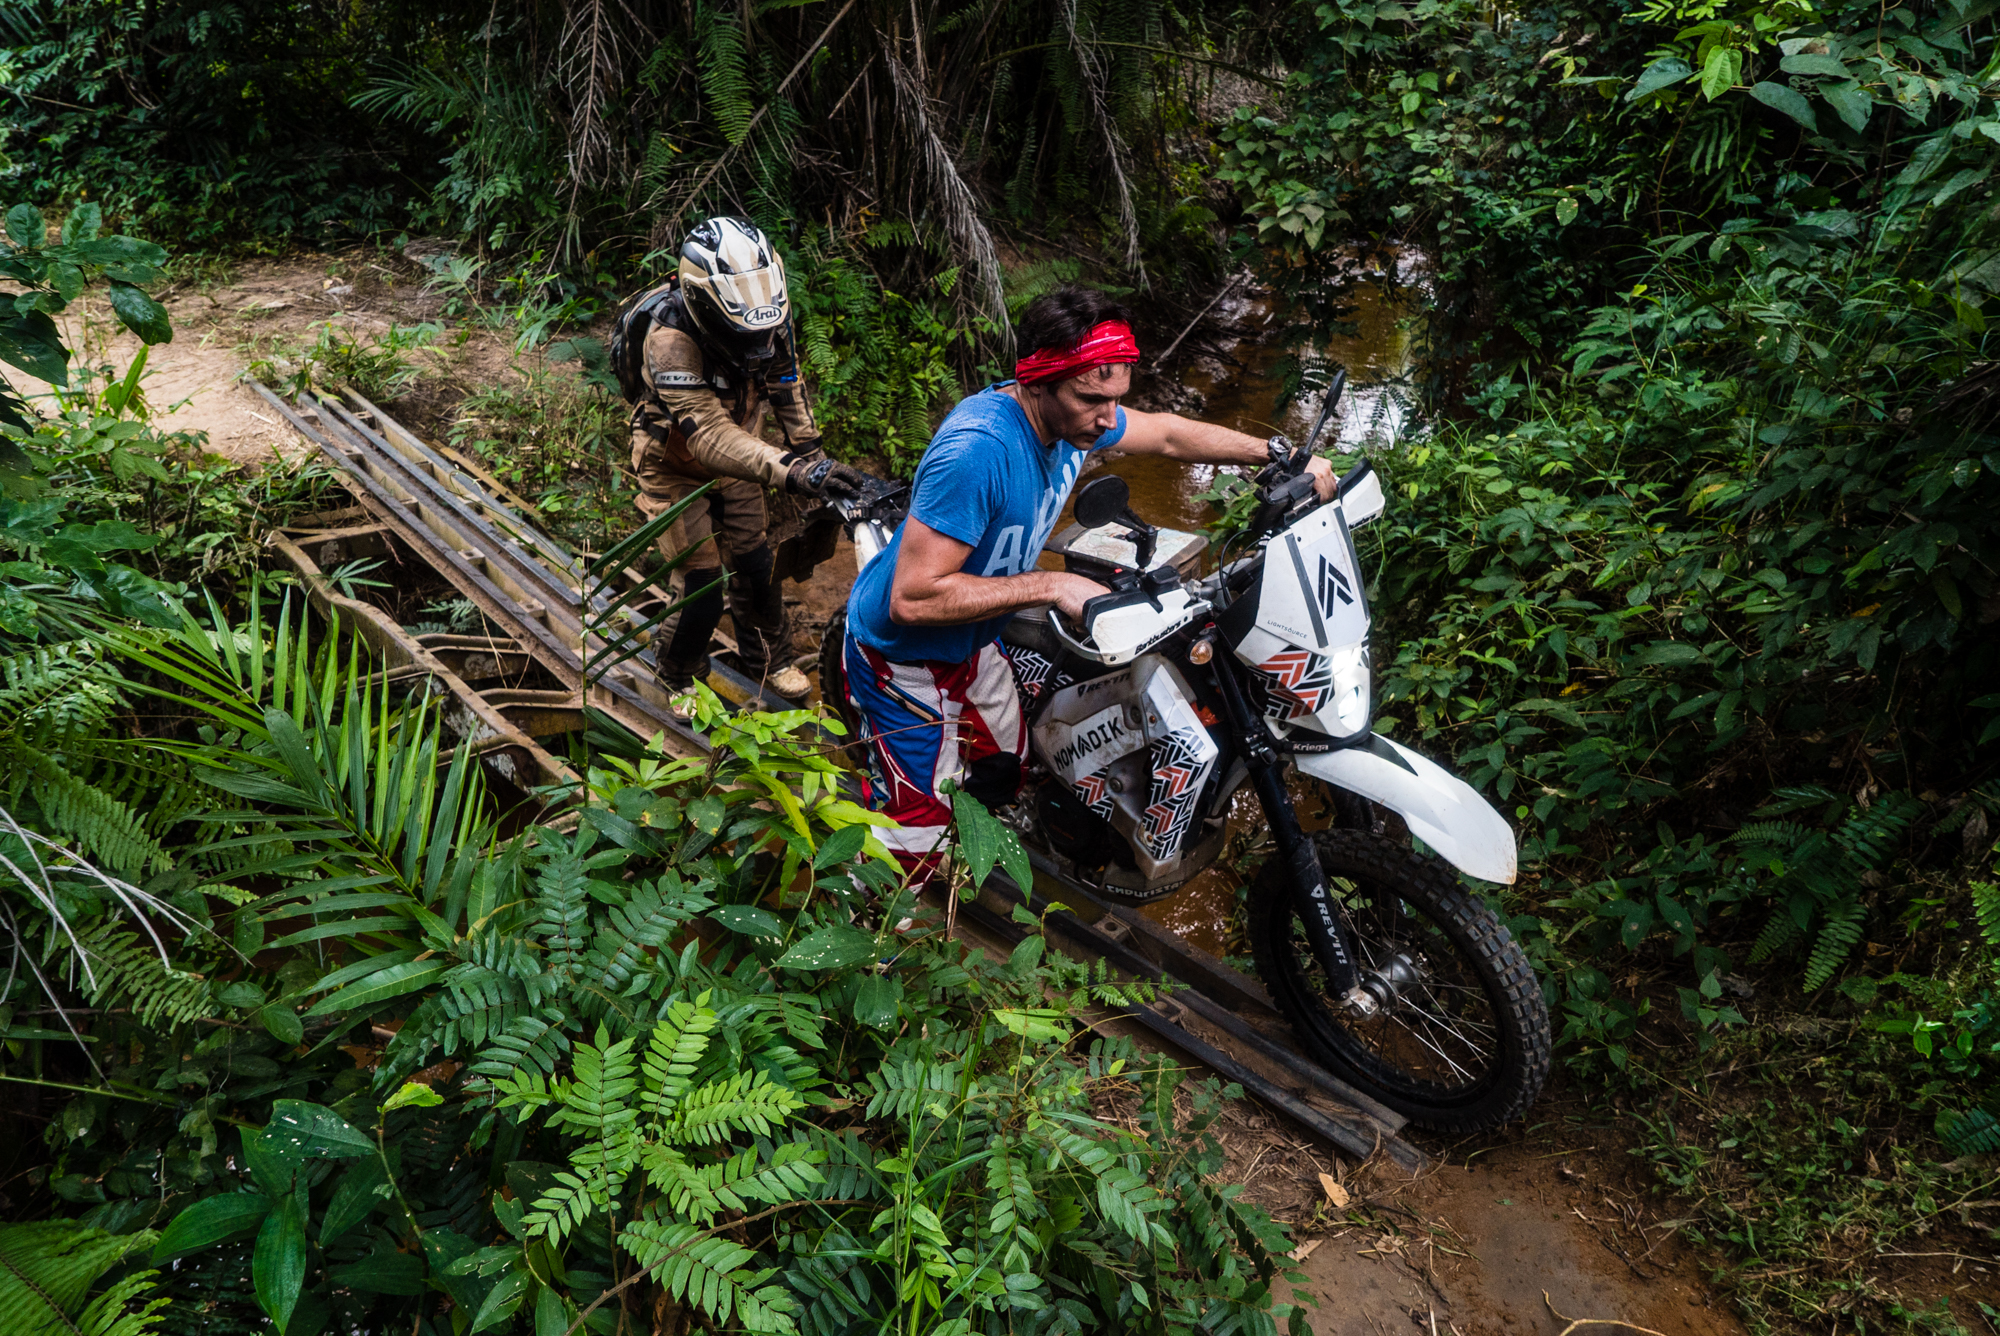 We took a day to just go riding without the bags with Frank and that was amazing. Single track and sand riding along the Congo to Zongo Falls. It was a great day out.